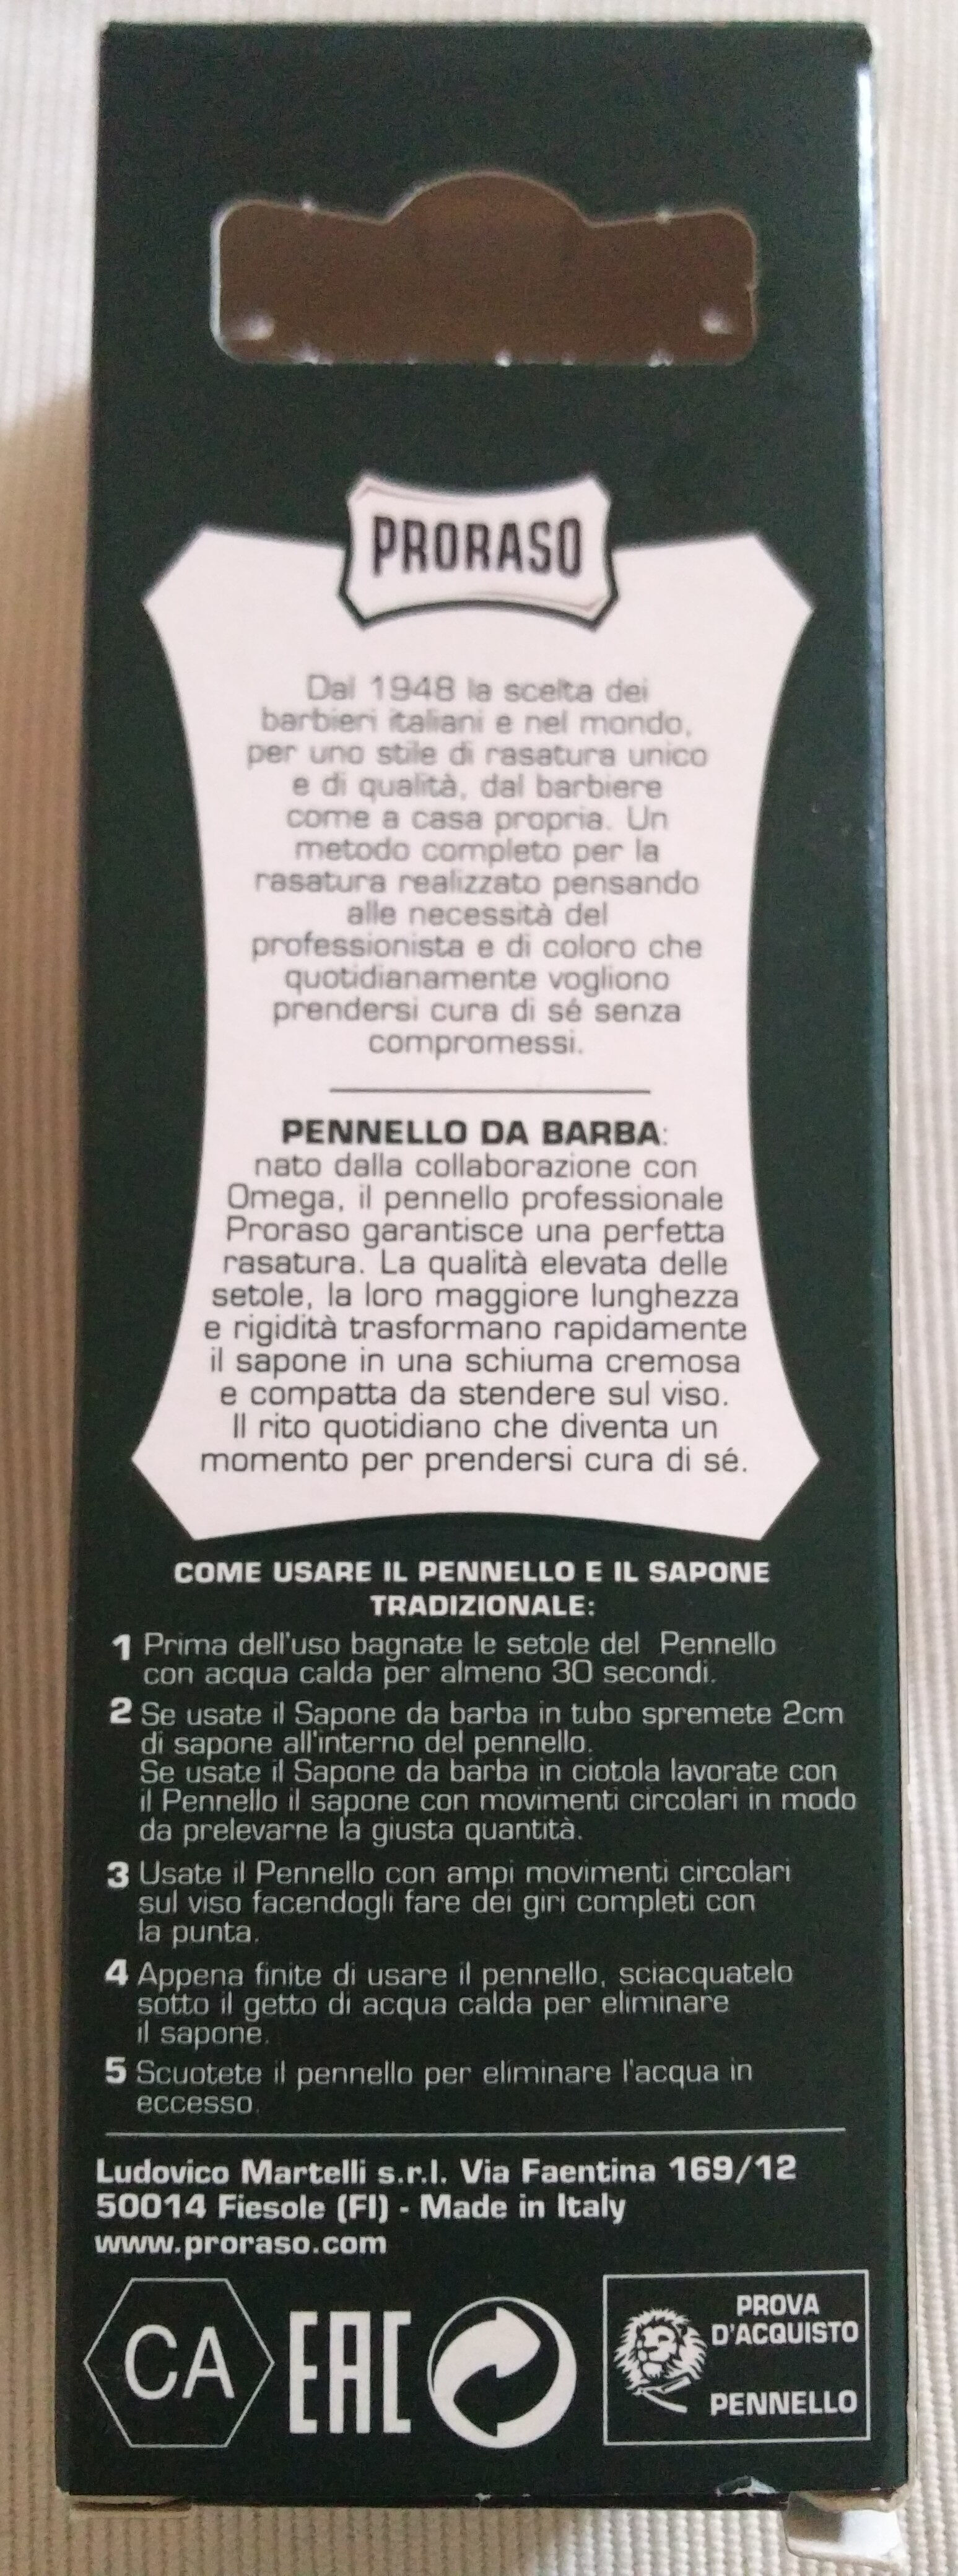 Pennello da Barba - Product - en